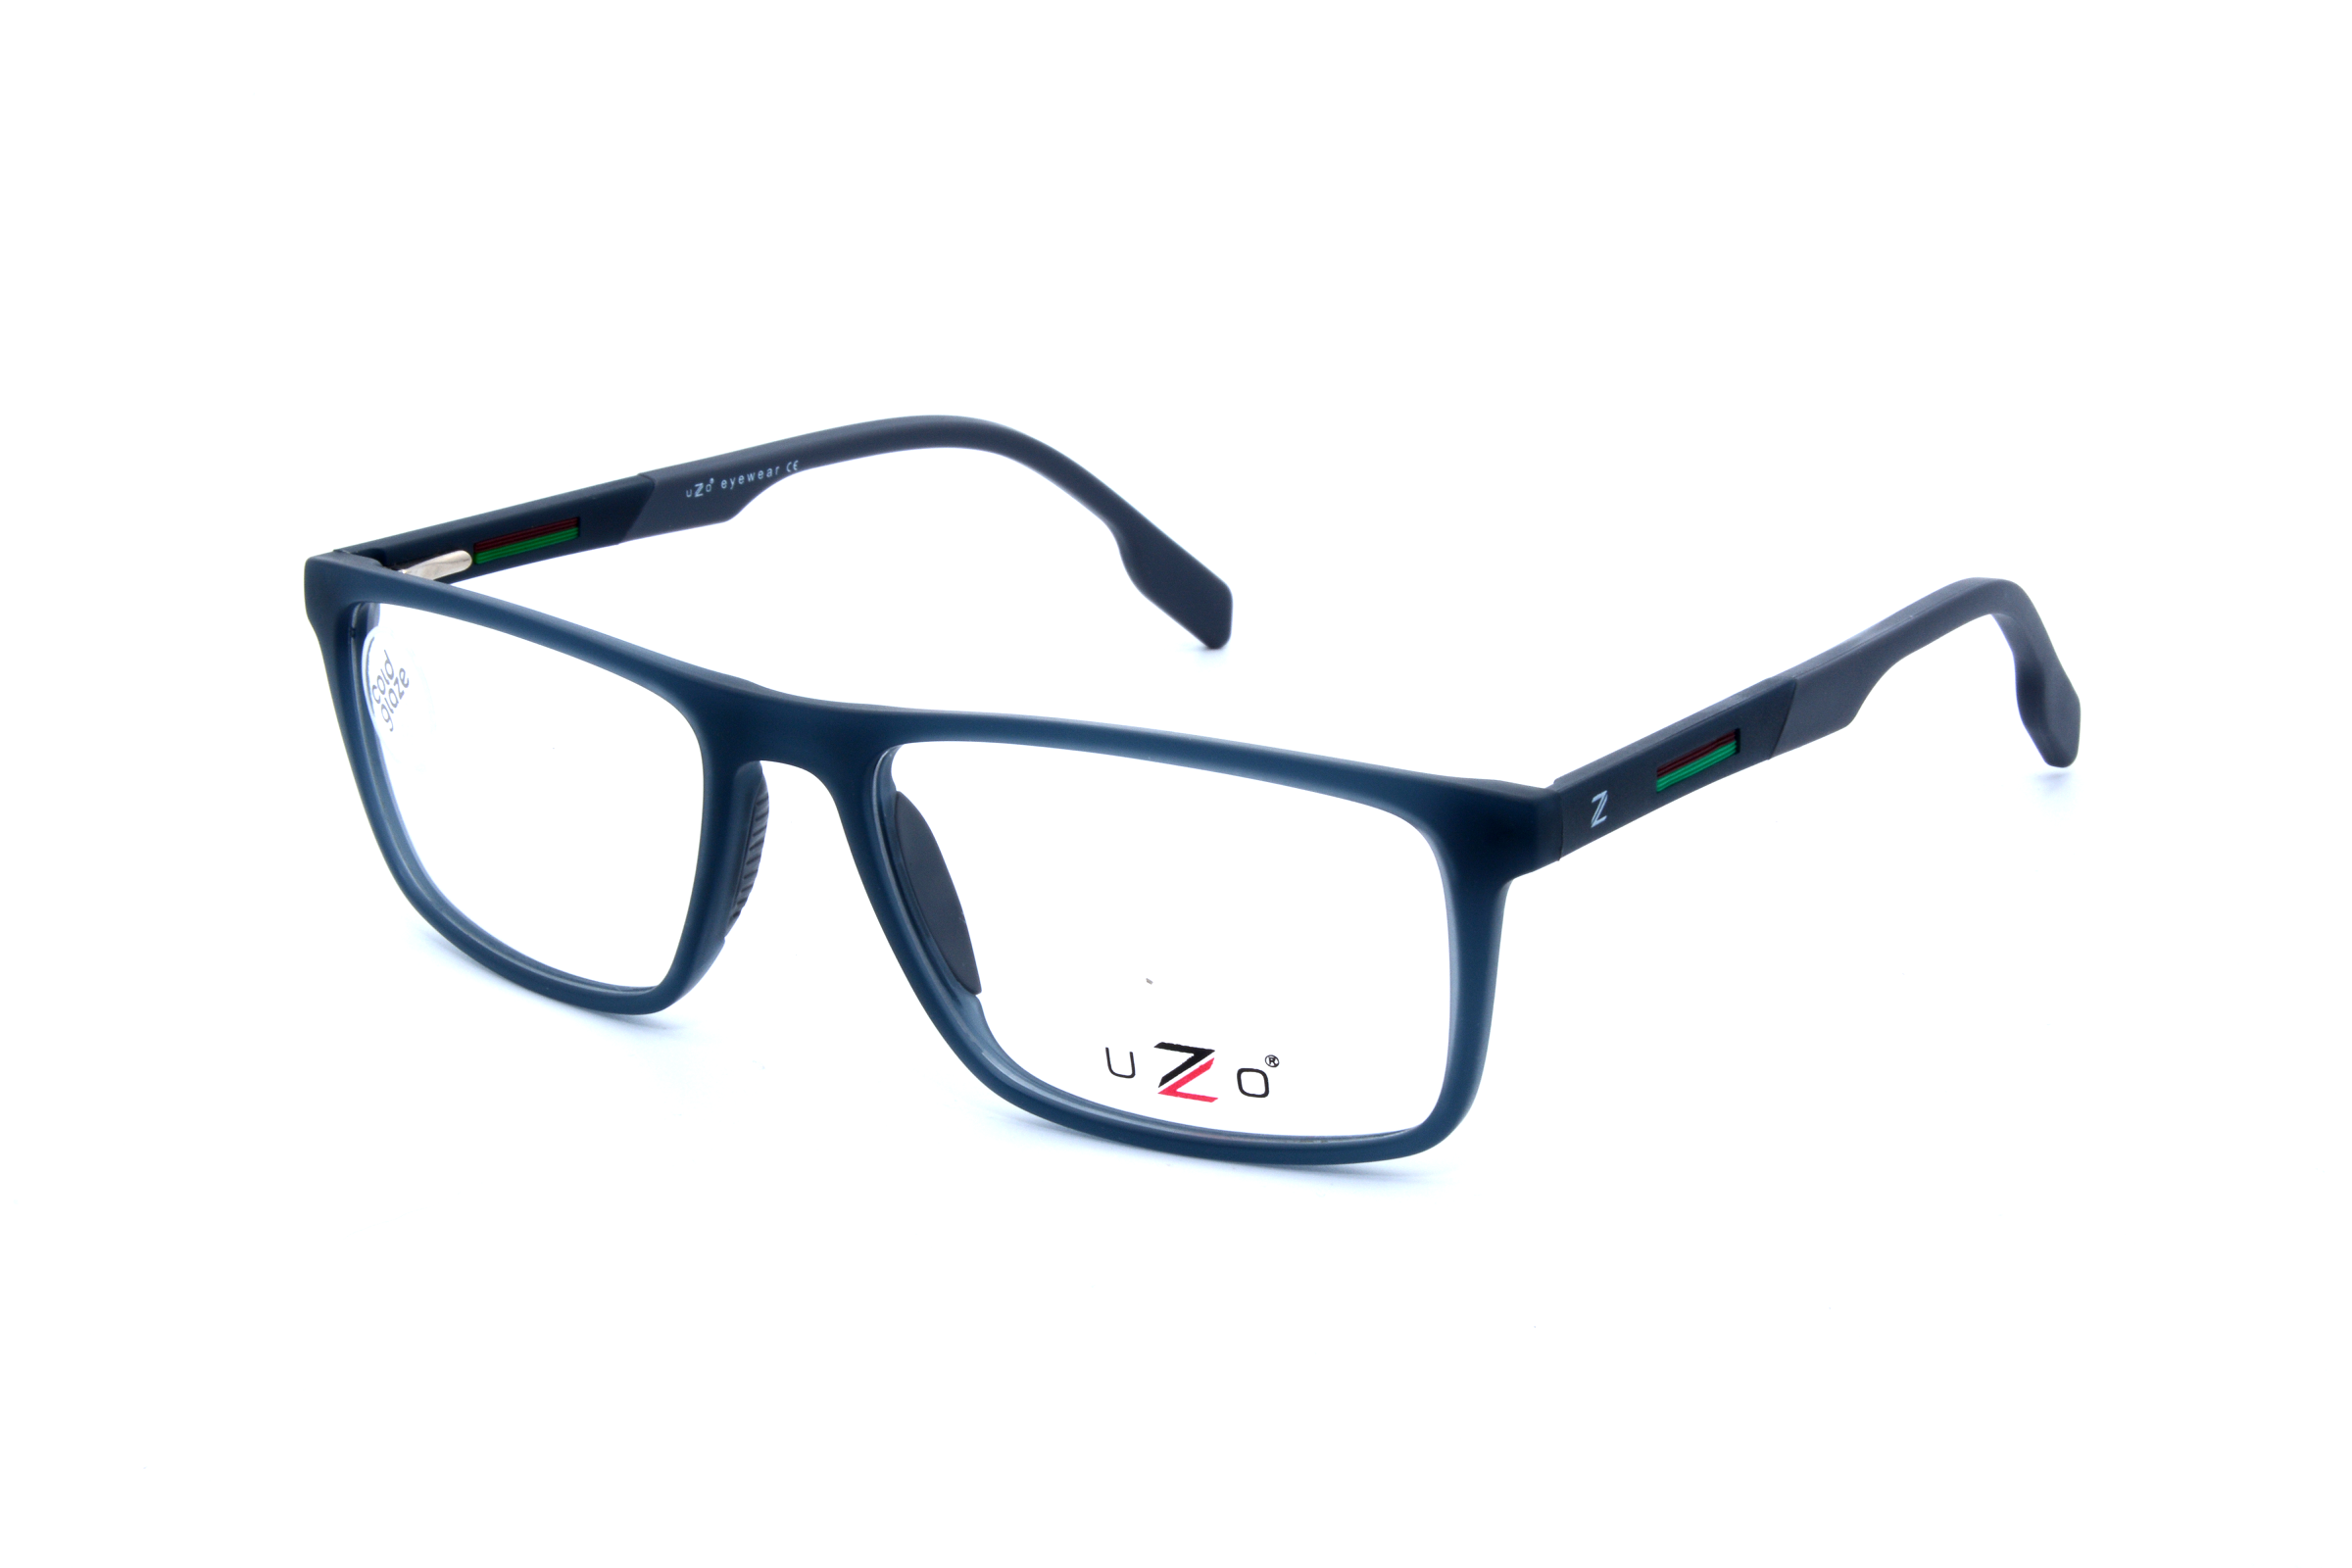 UZO UZ918 - Optics Trading